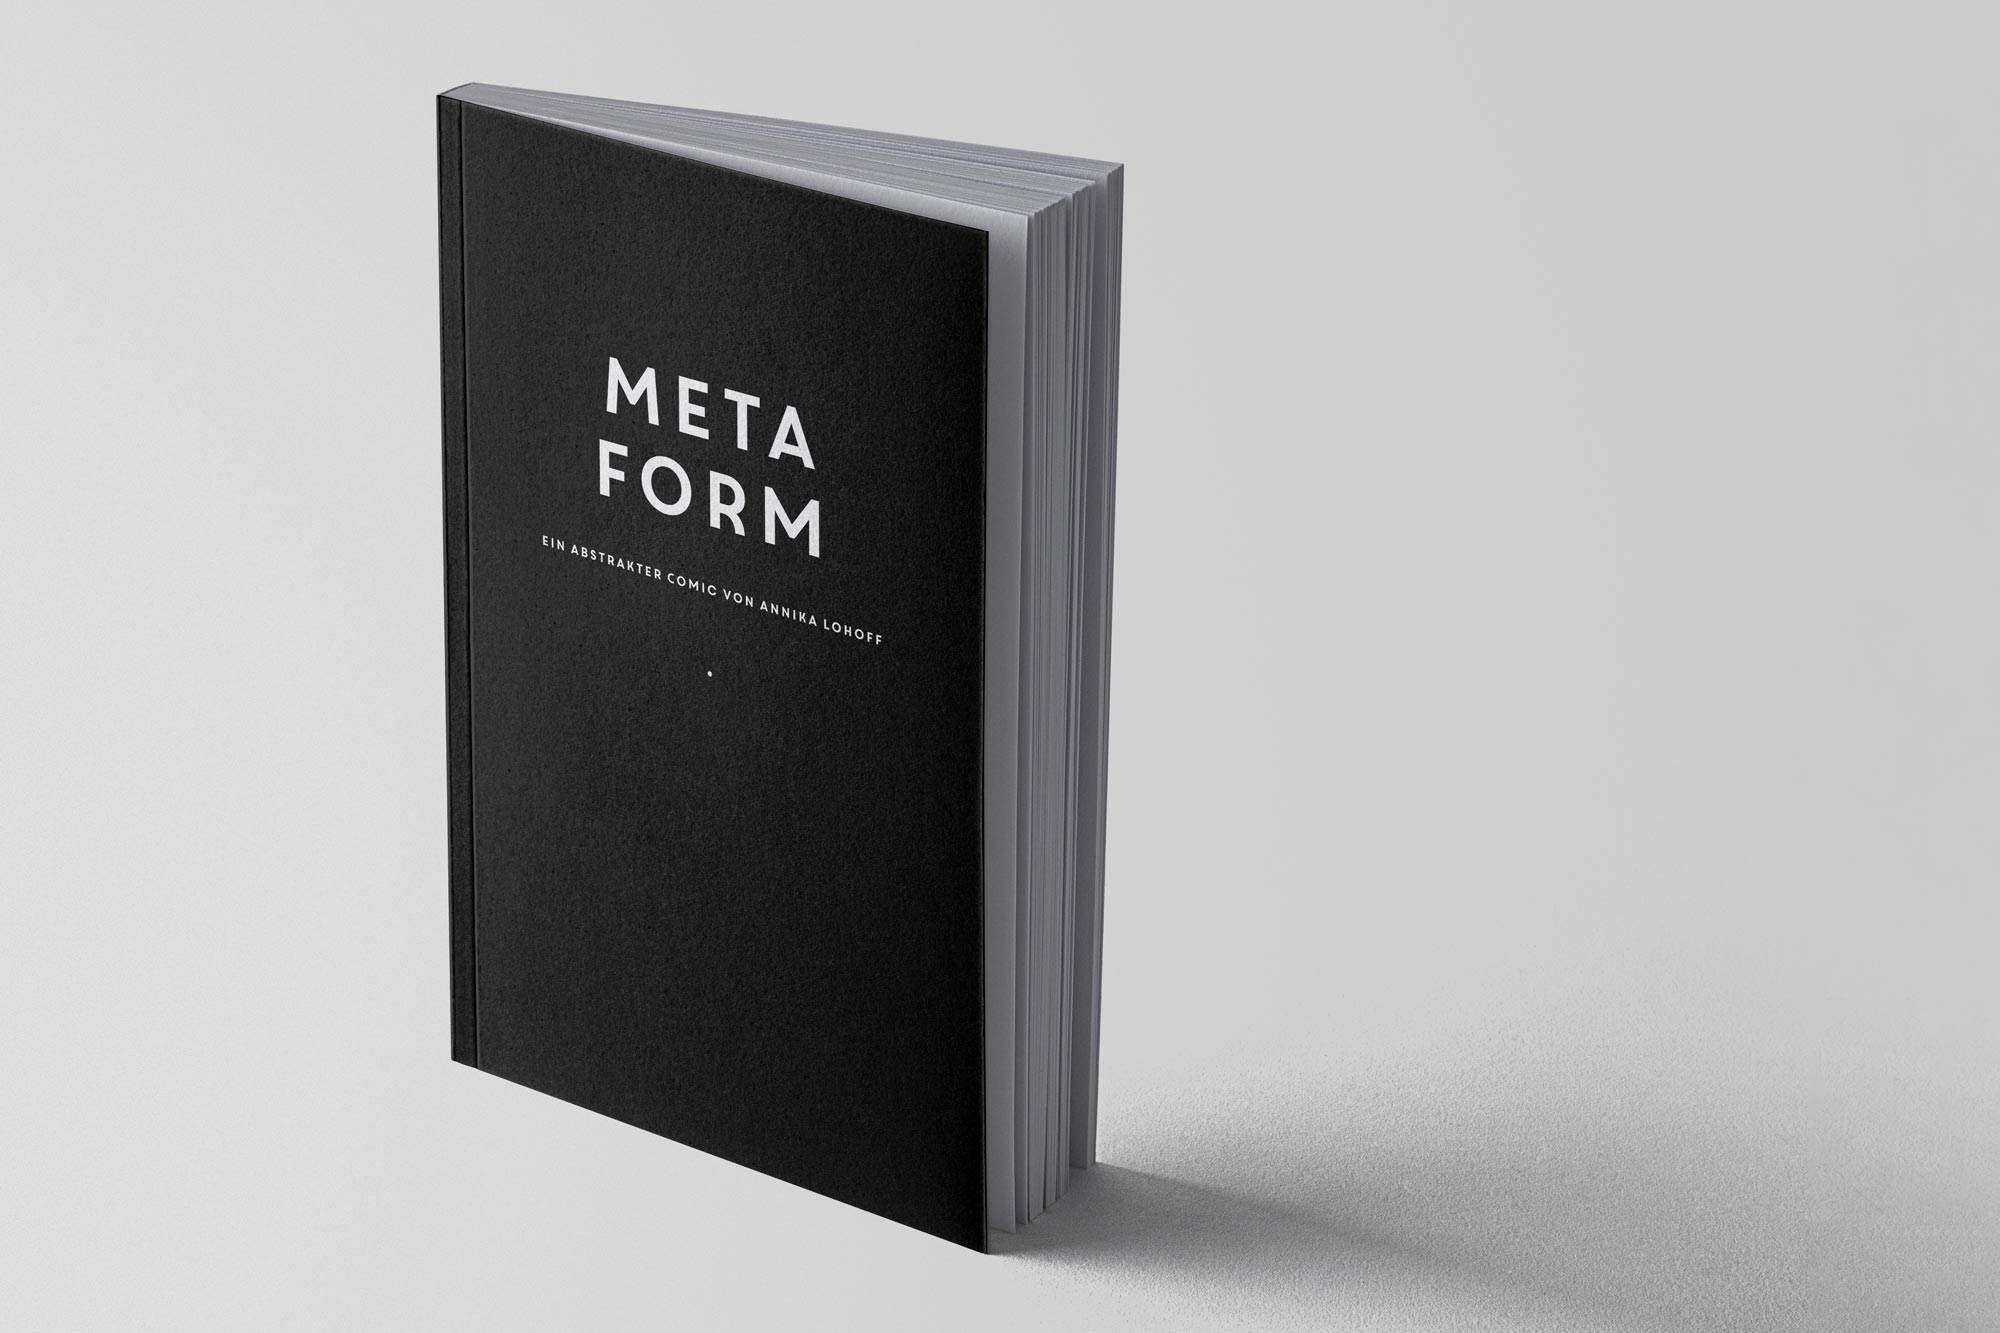 Annika Lohoff Metaform